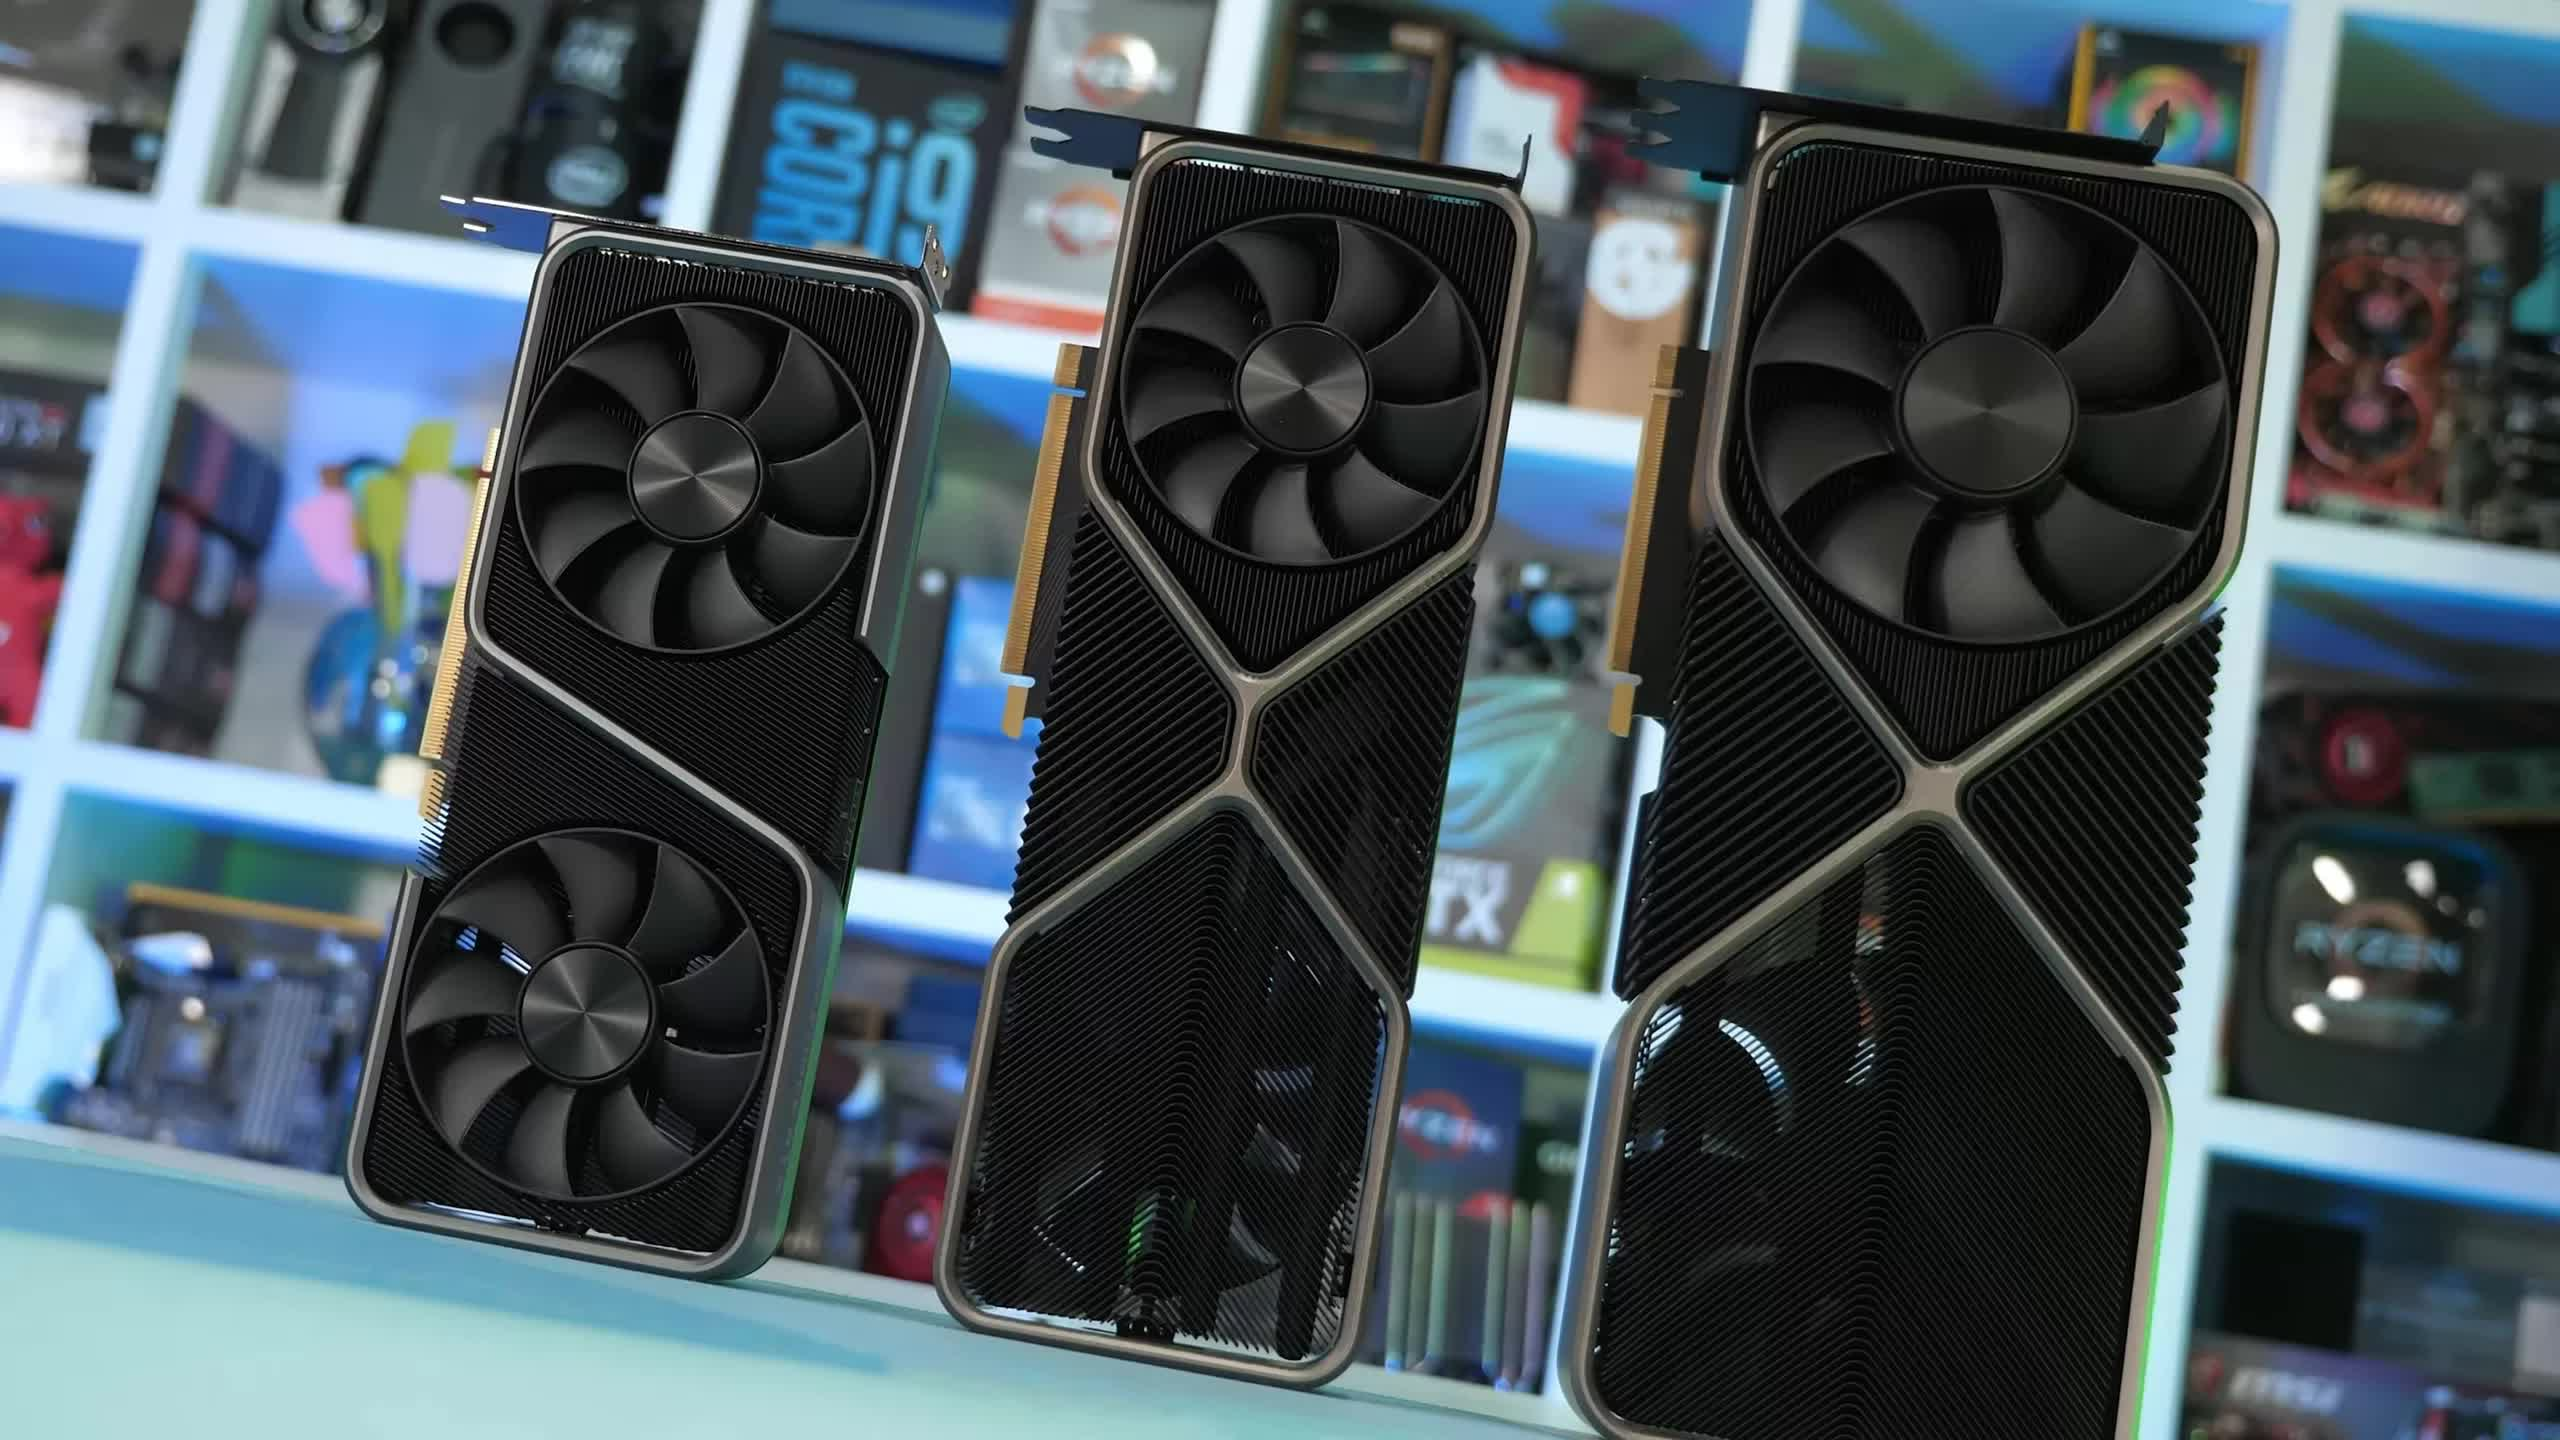 Nvidia is working on competing technology to AMD's Smart Access Memory for RTX 30 series GPUs